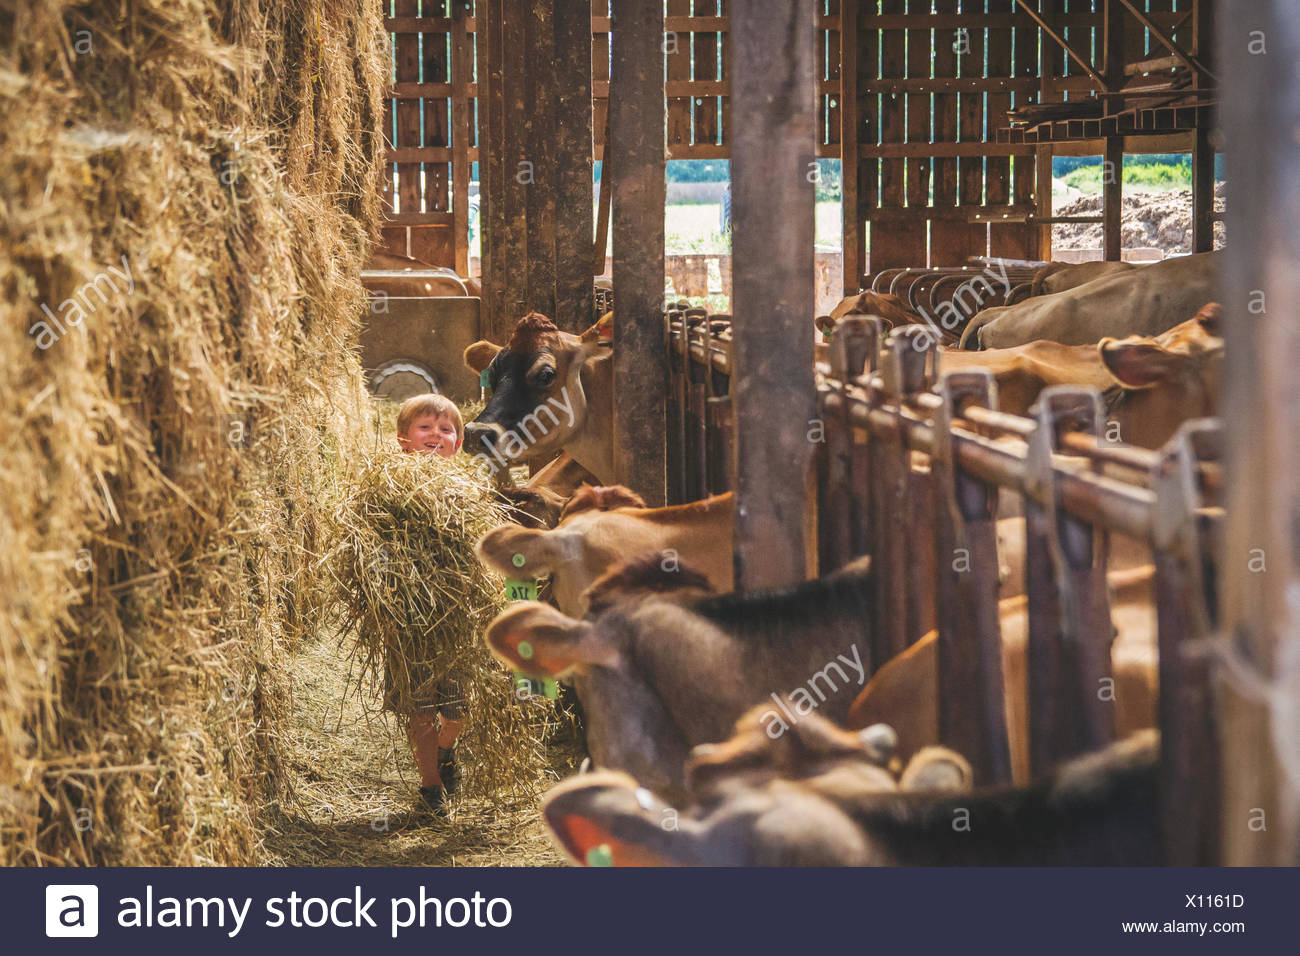 Boy with Cows in stalls on farm - Stock Image